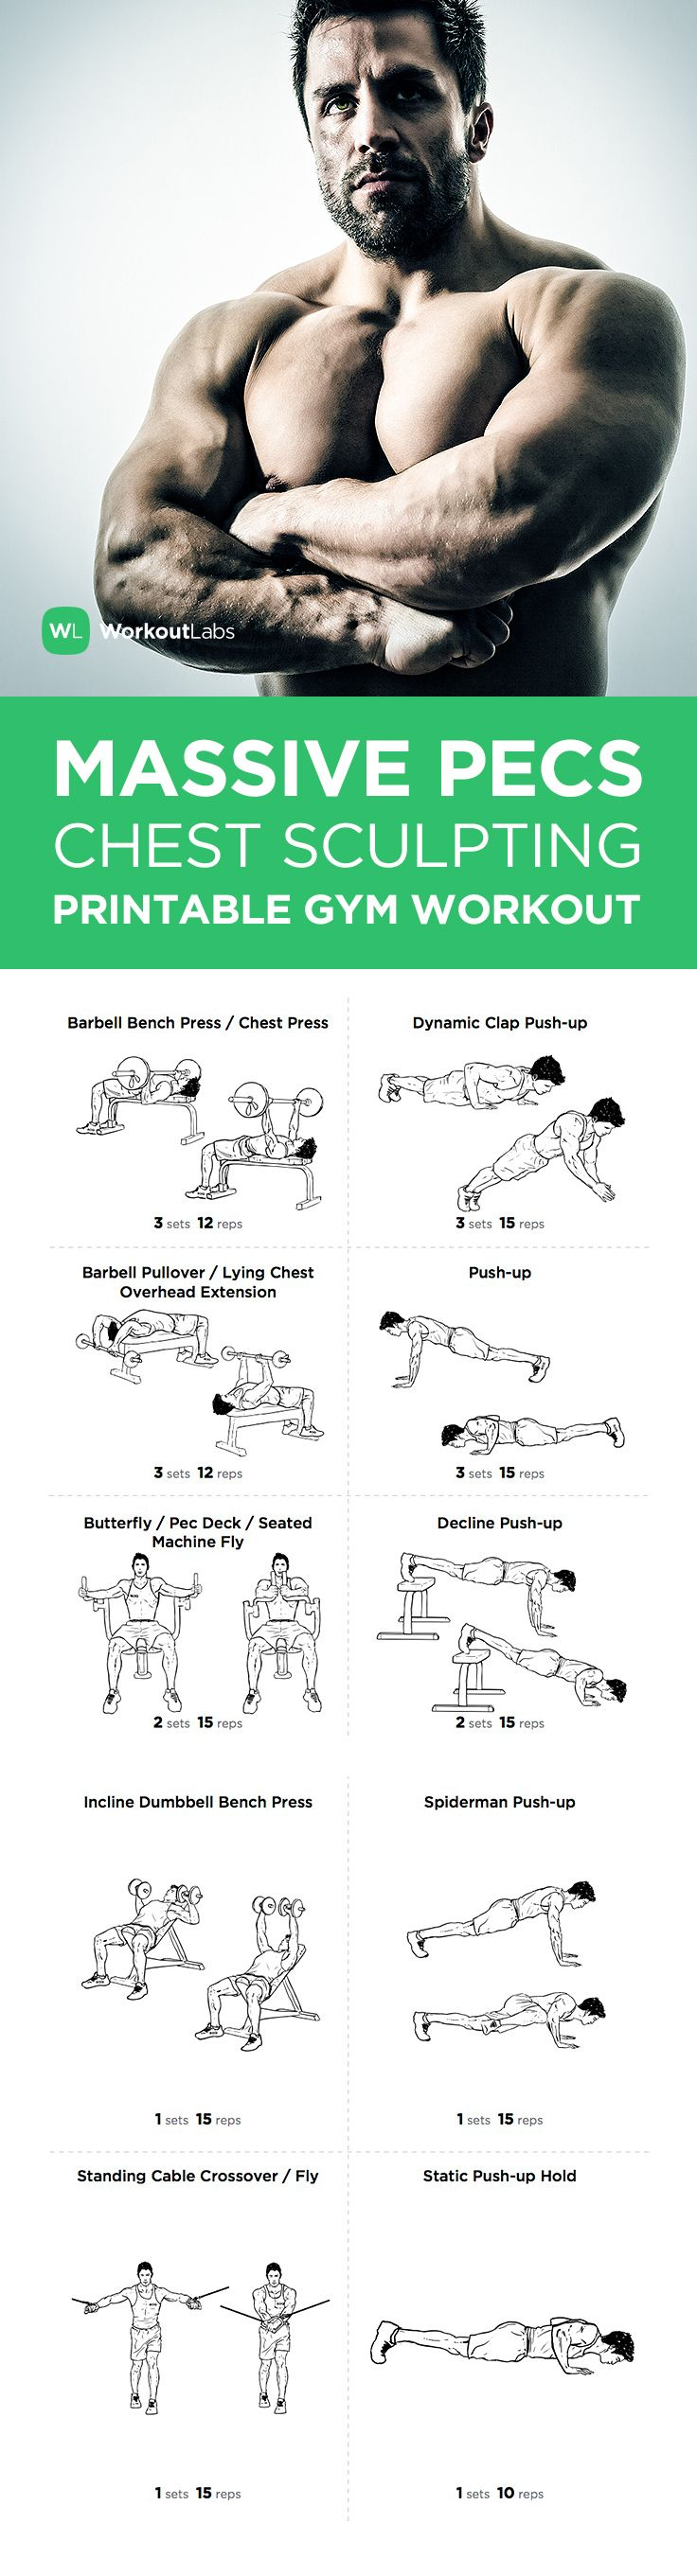 Visit http://WorkoutLabs.com/workout-plans/massive-pecs-chest-sculpting-workout-for-men/ for a FREE PDF of this Massive Pecs Chest Sculpting Workout for Men.